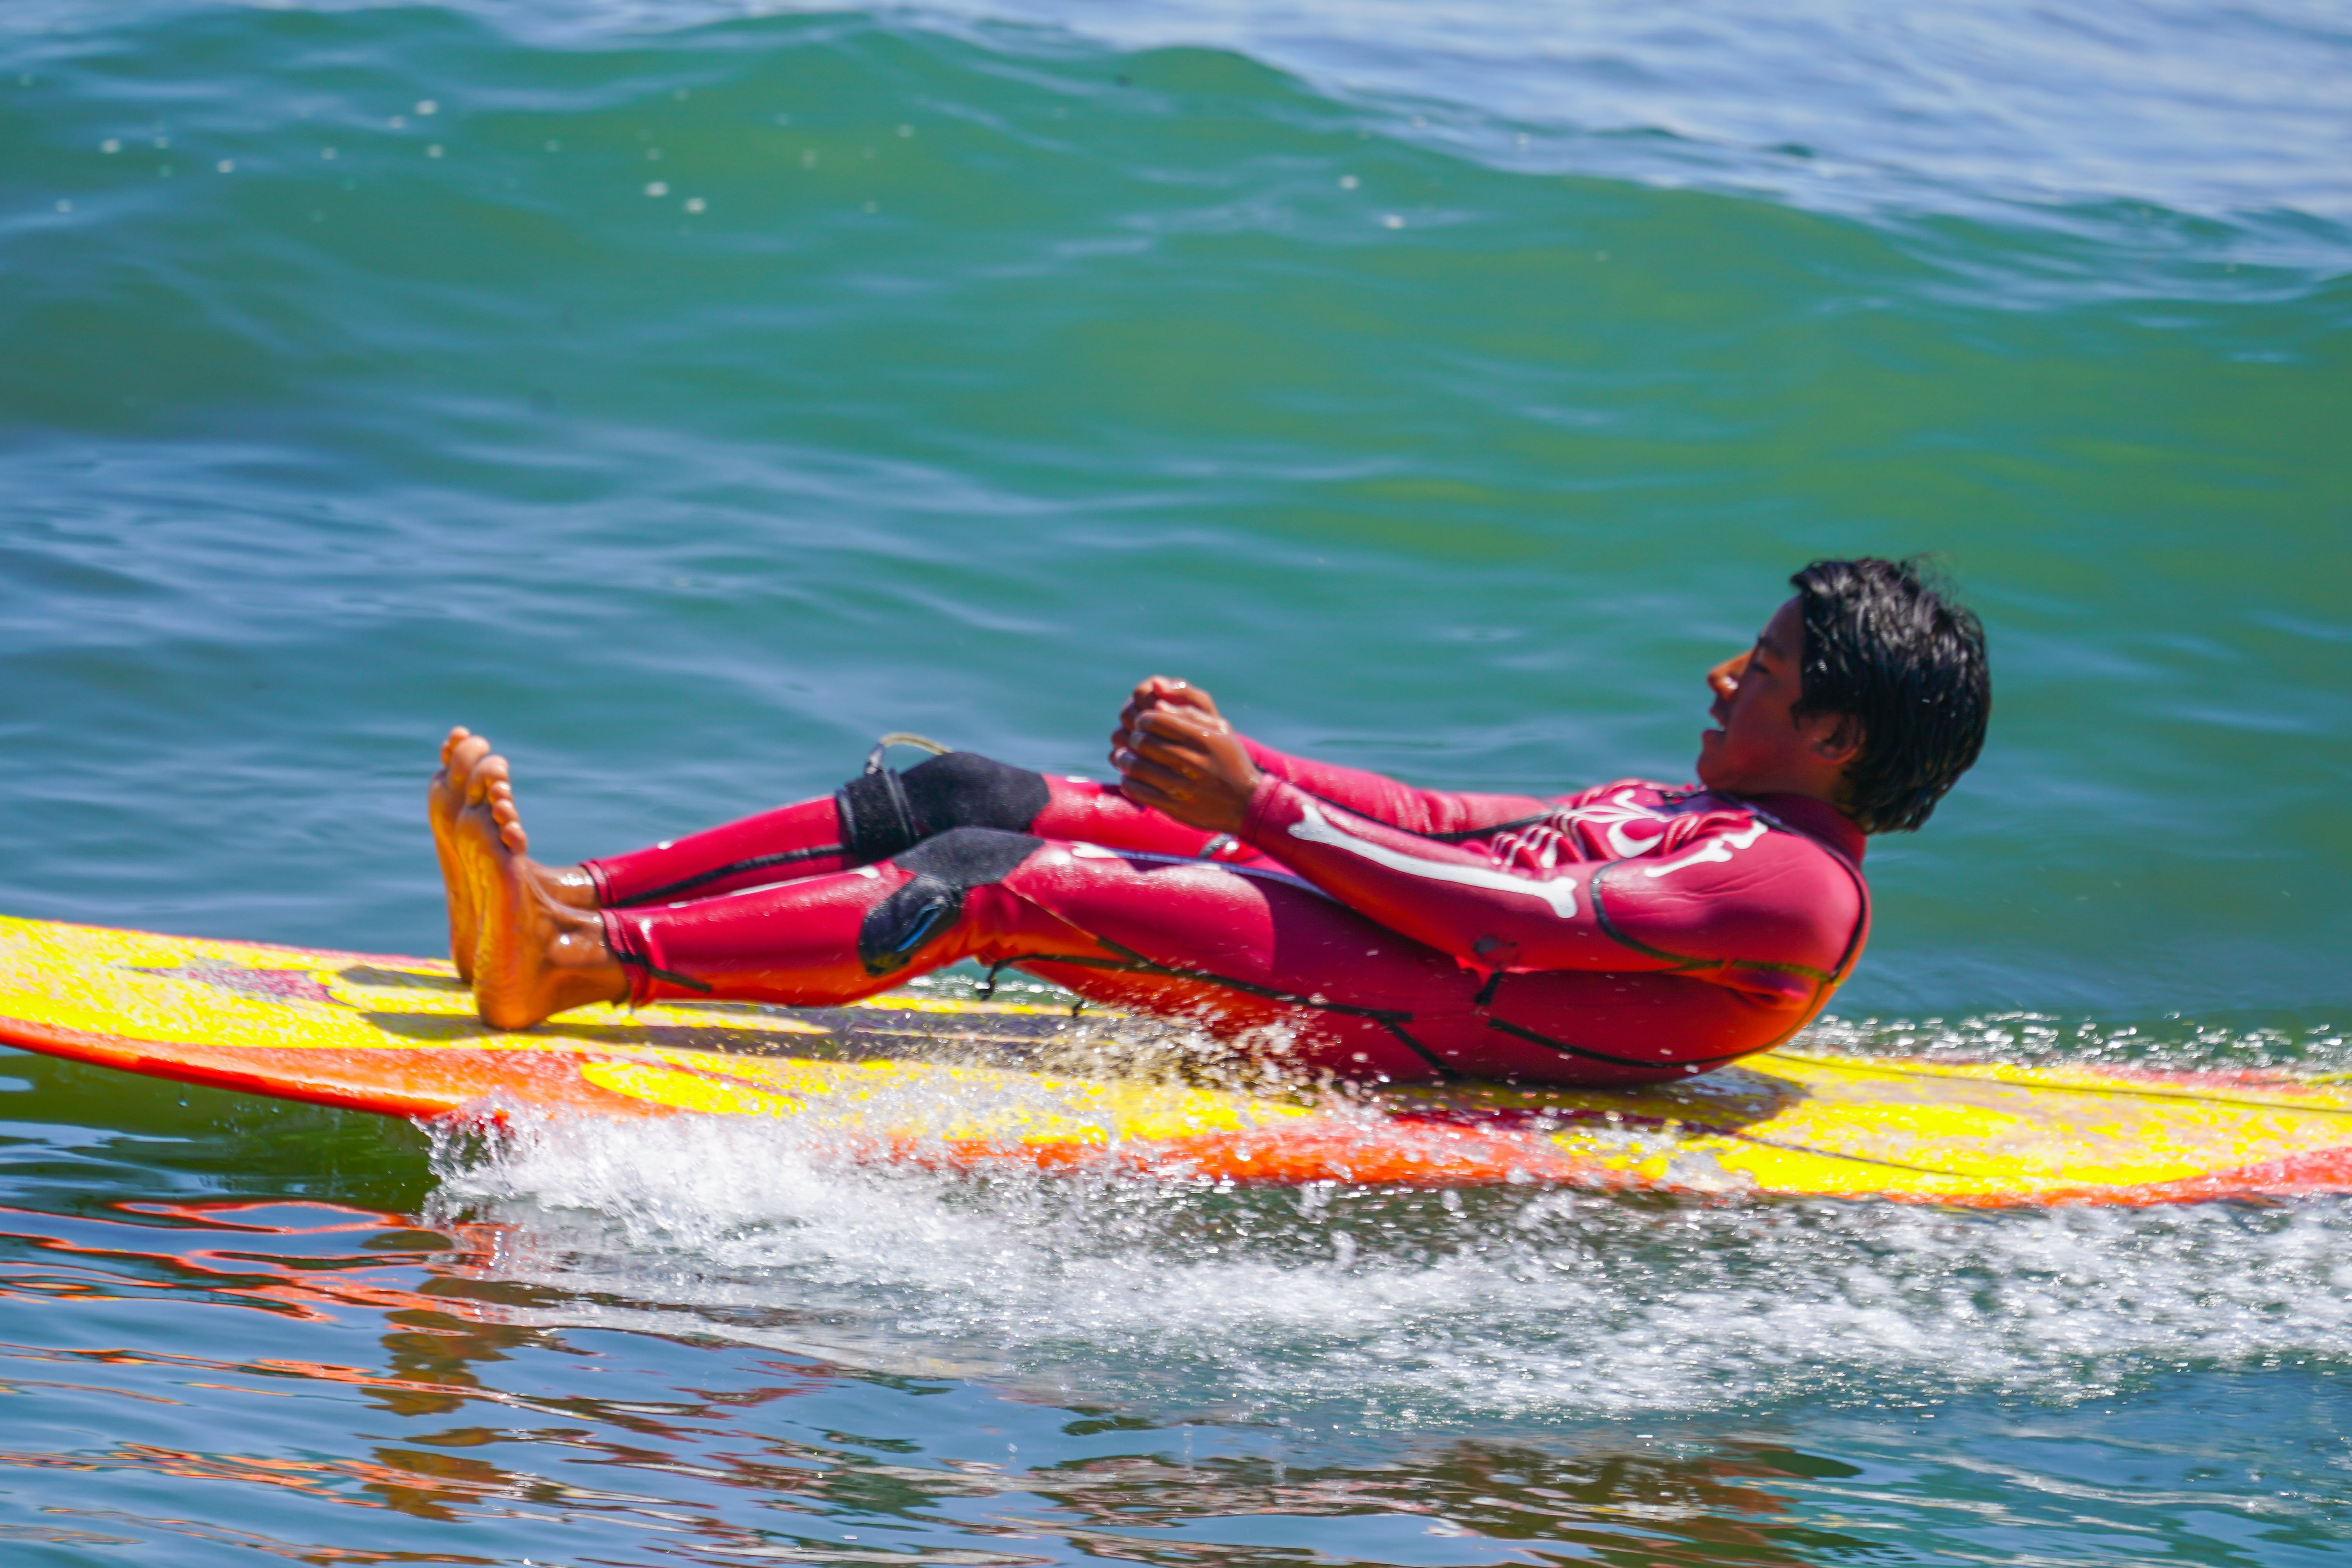 Man Lying Down on a Yellow Surfboard